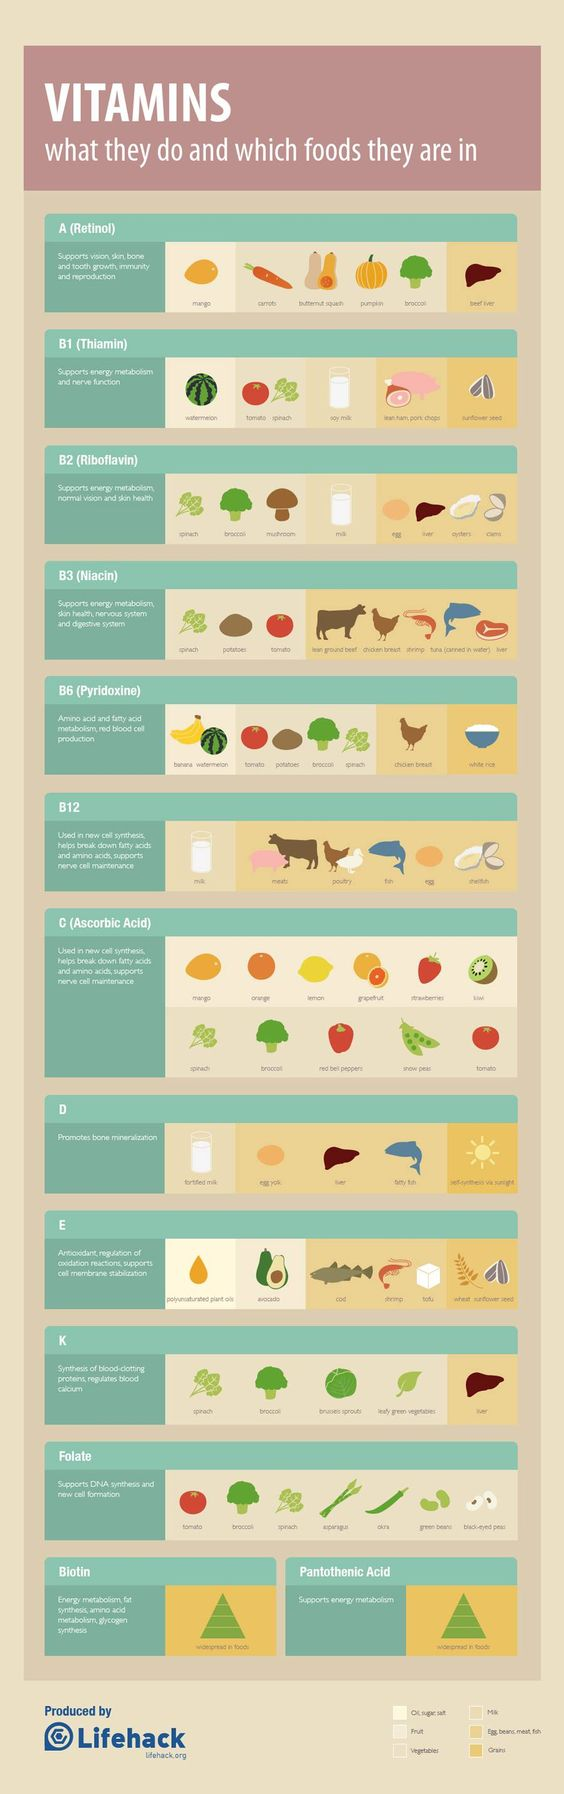 Not sure which foods will give your daily allotment of certain vitamins? Here's a handy cheat sheet.